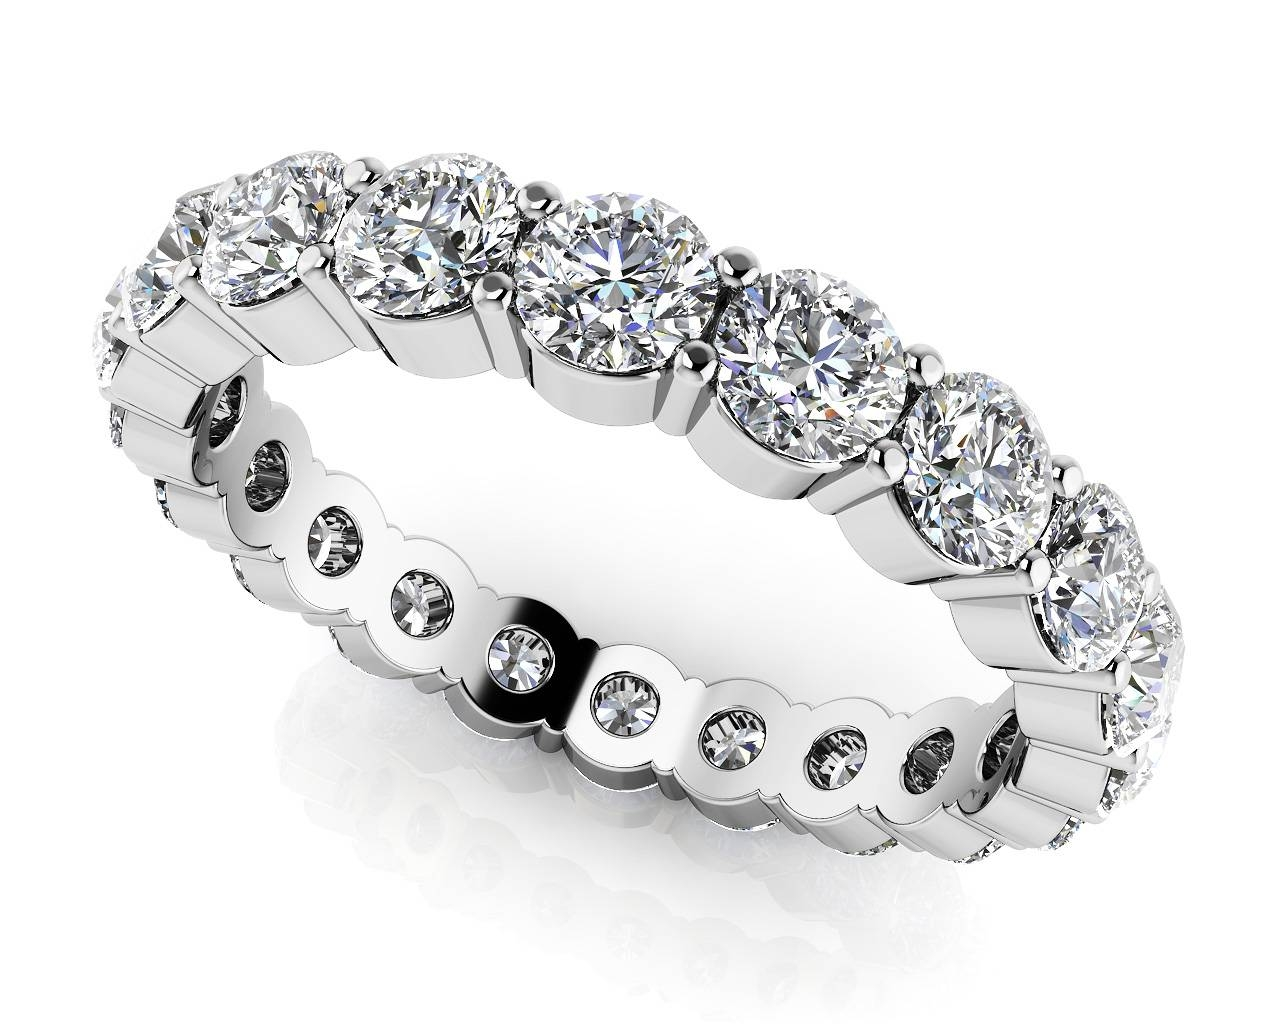 Design Your Own Diamond Anniversary Ring & Eternity Ring For Latest Anniversary Rings (Gallery 5 of 25)